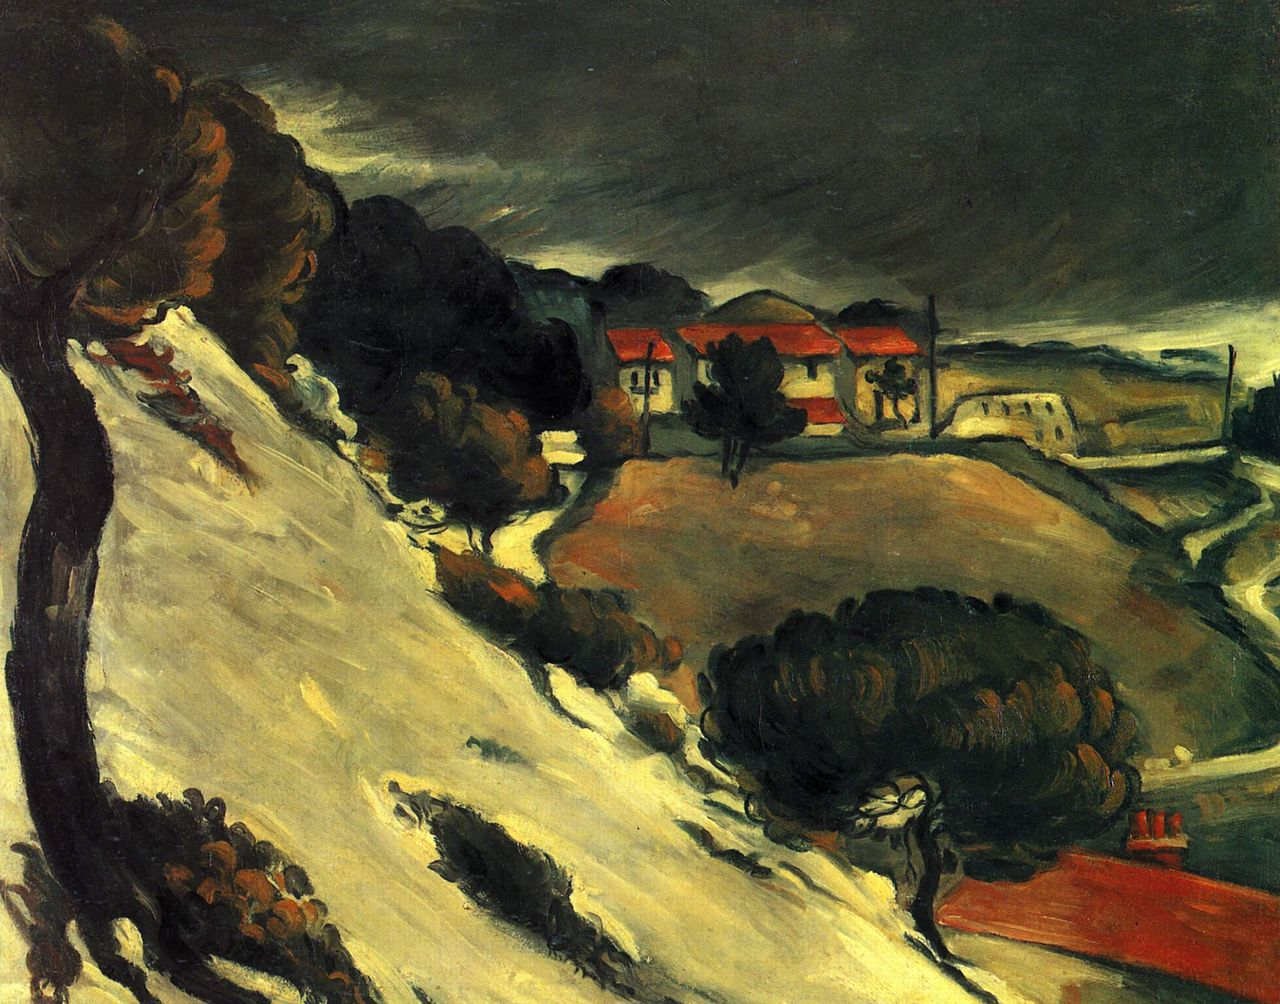 Fonte des Neiges à l'Estaque, by Paul Cézanne, 1870